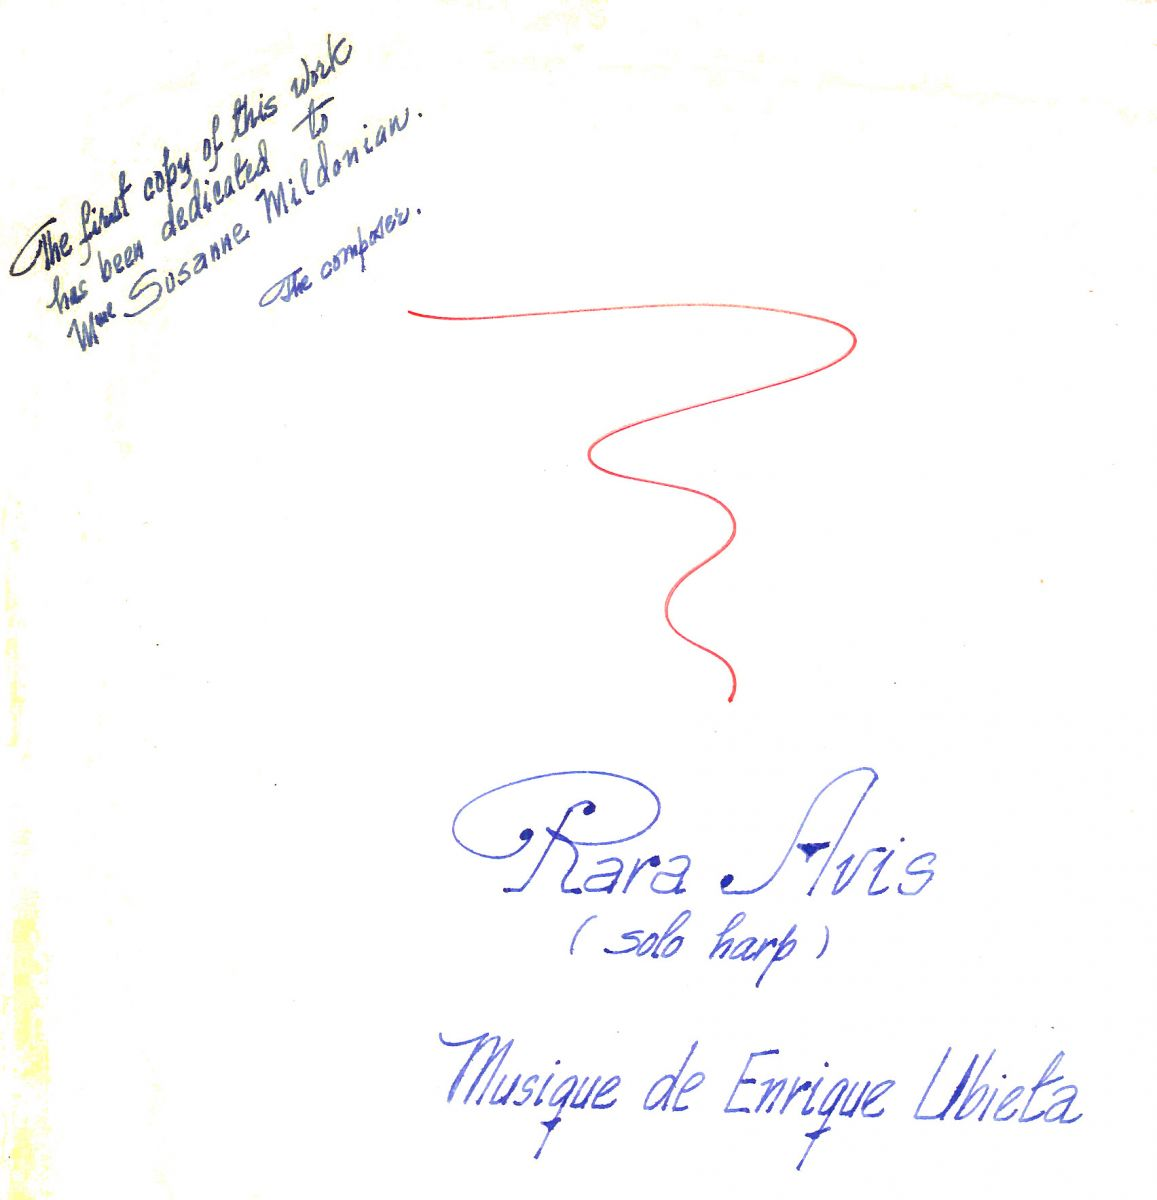 Autograph dedication by Enrique Ubieta, New York, 1975. BV-09-0066.